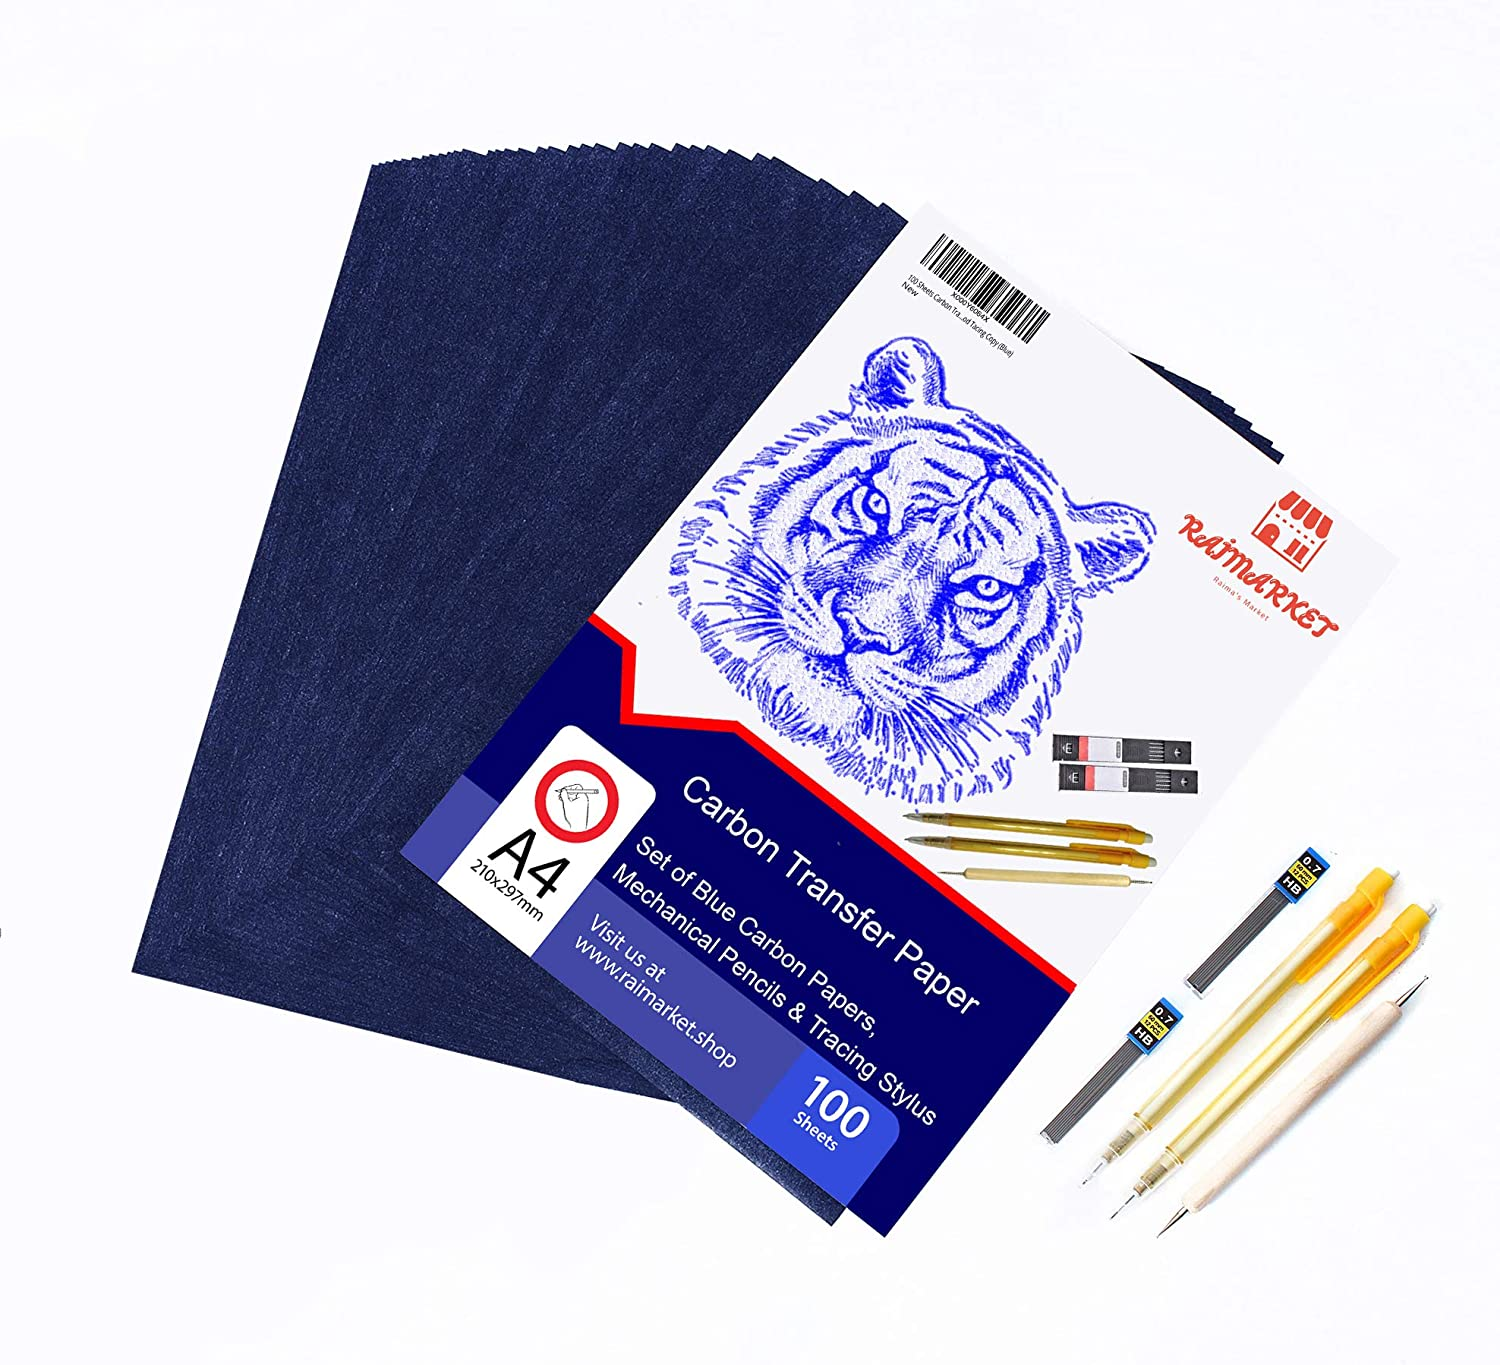 Premium Quality Carbon and Tracing Paper Transfer Craft and Embroidery by Raimarket Tracing Carbon Transfer Graphite Blue Paper 100 Sheets with Embossing Stylus Set for Wood Copy